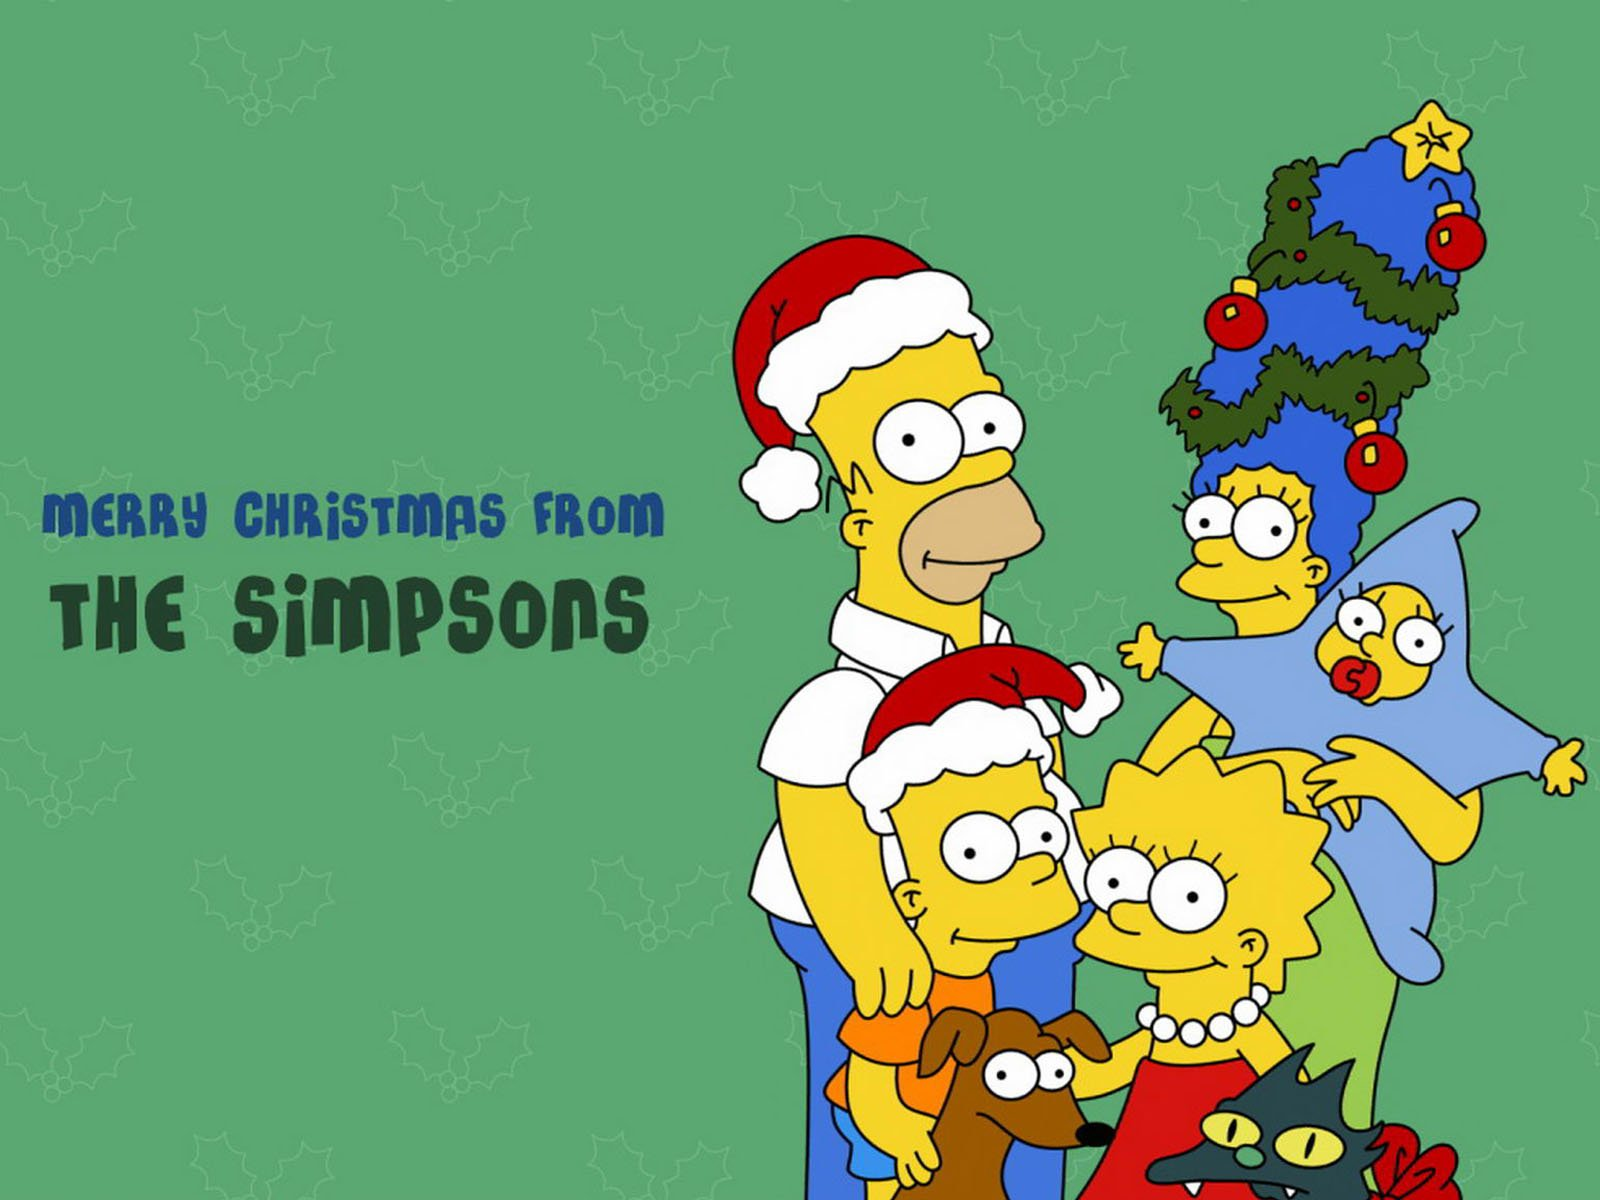 Merry Christmas from The Simpsons Wallpaper - Christmas Cartoon